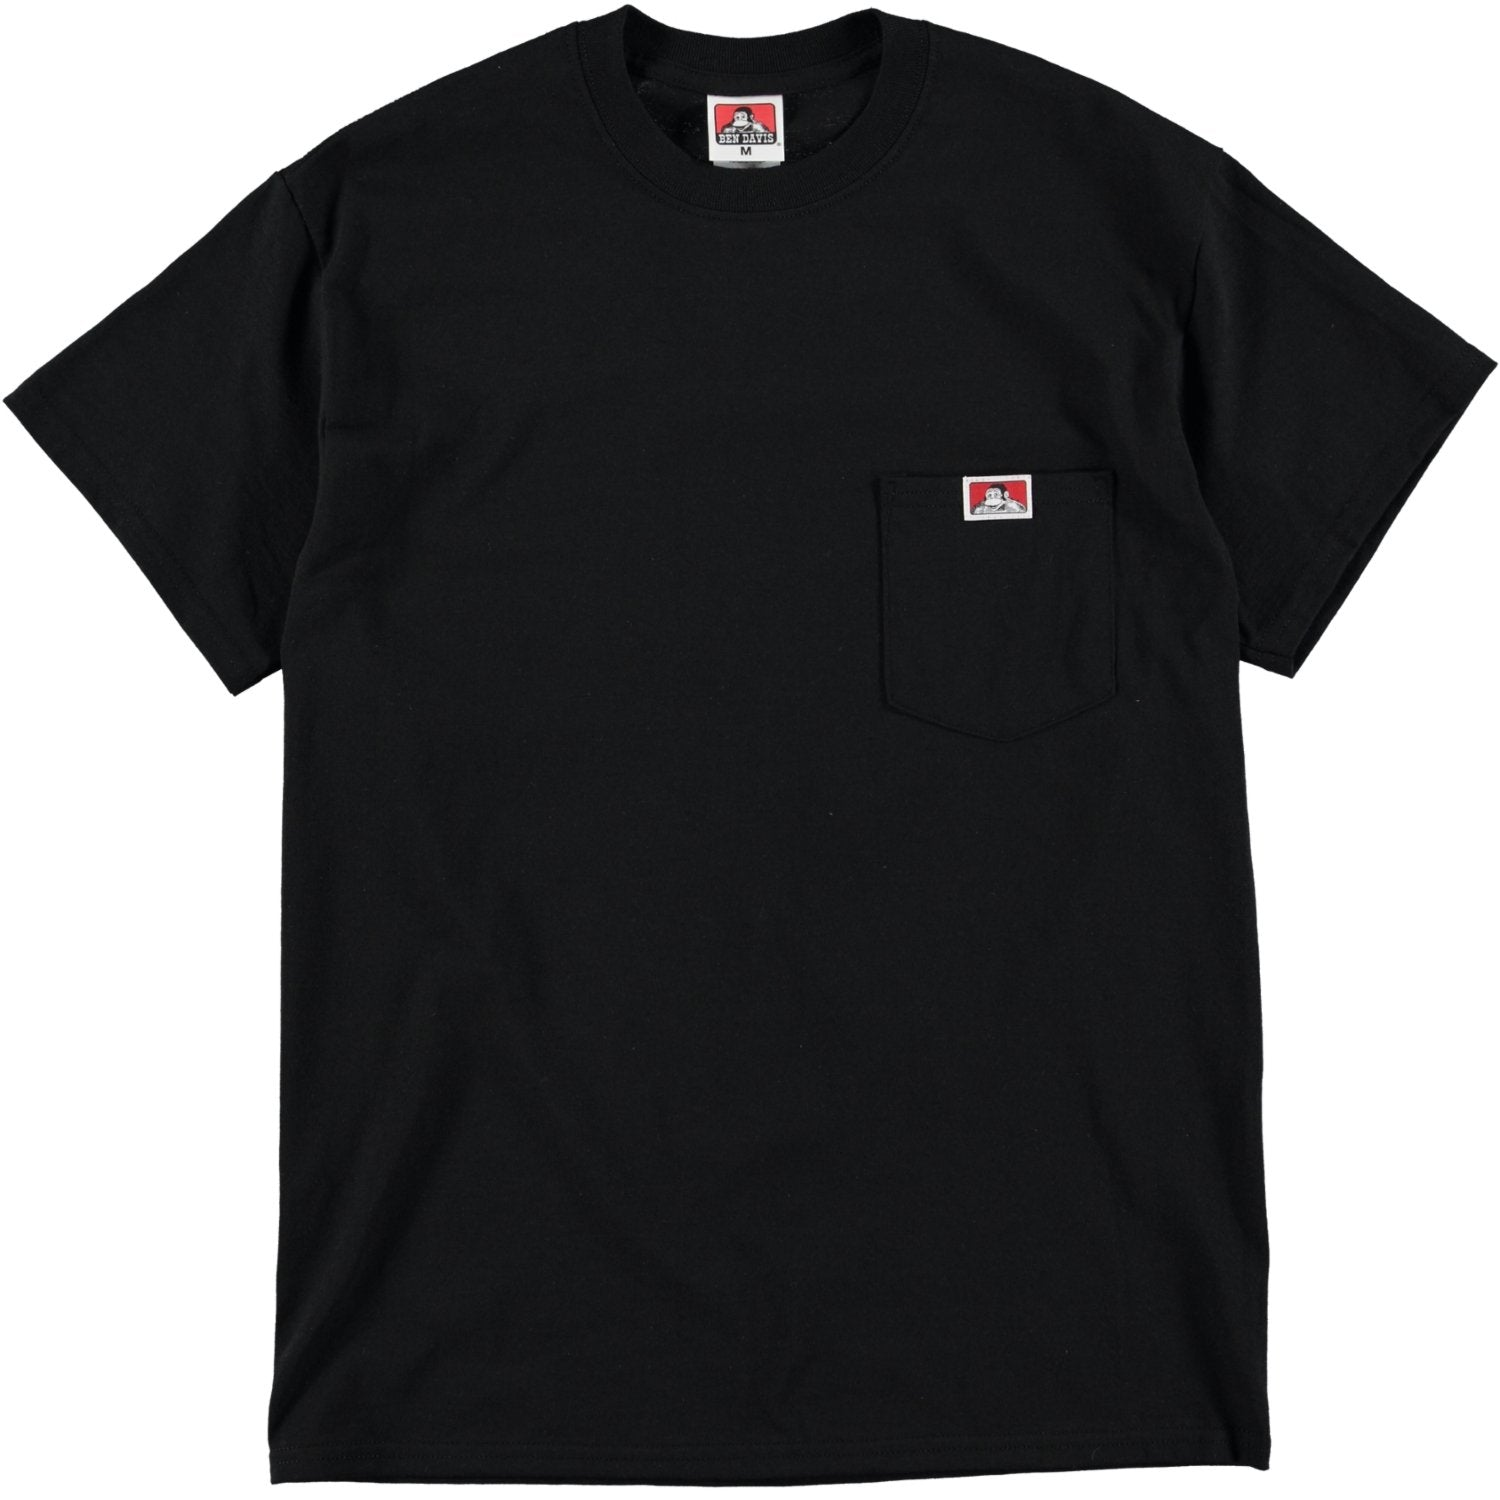 Heavy Duty Pocket Tee - Black